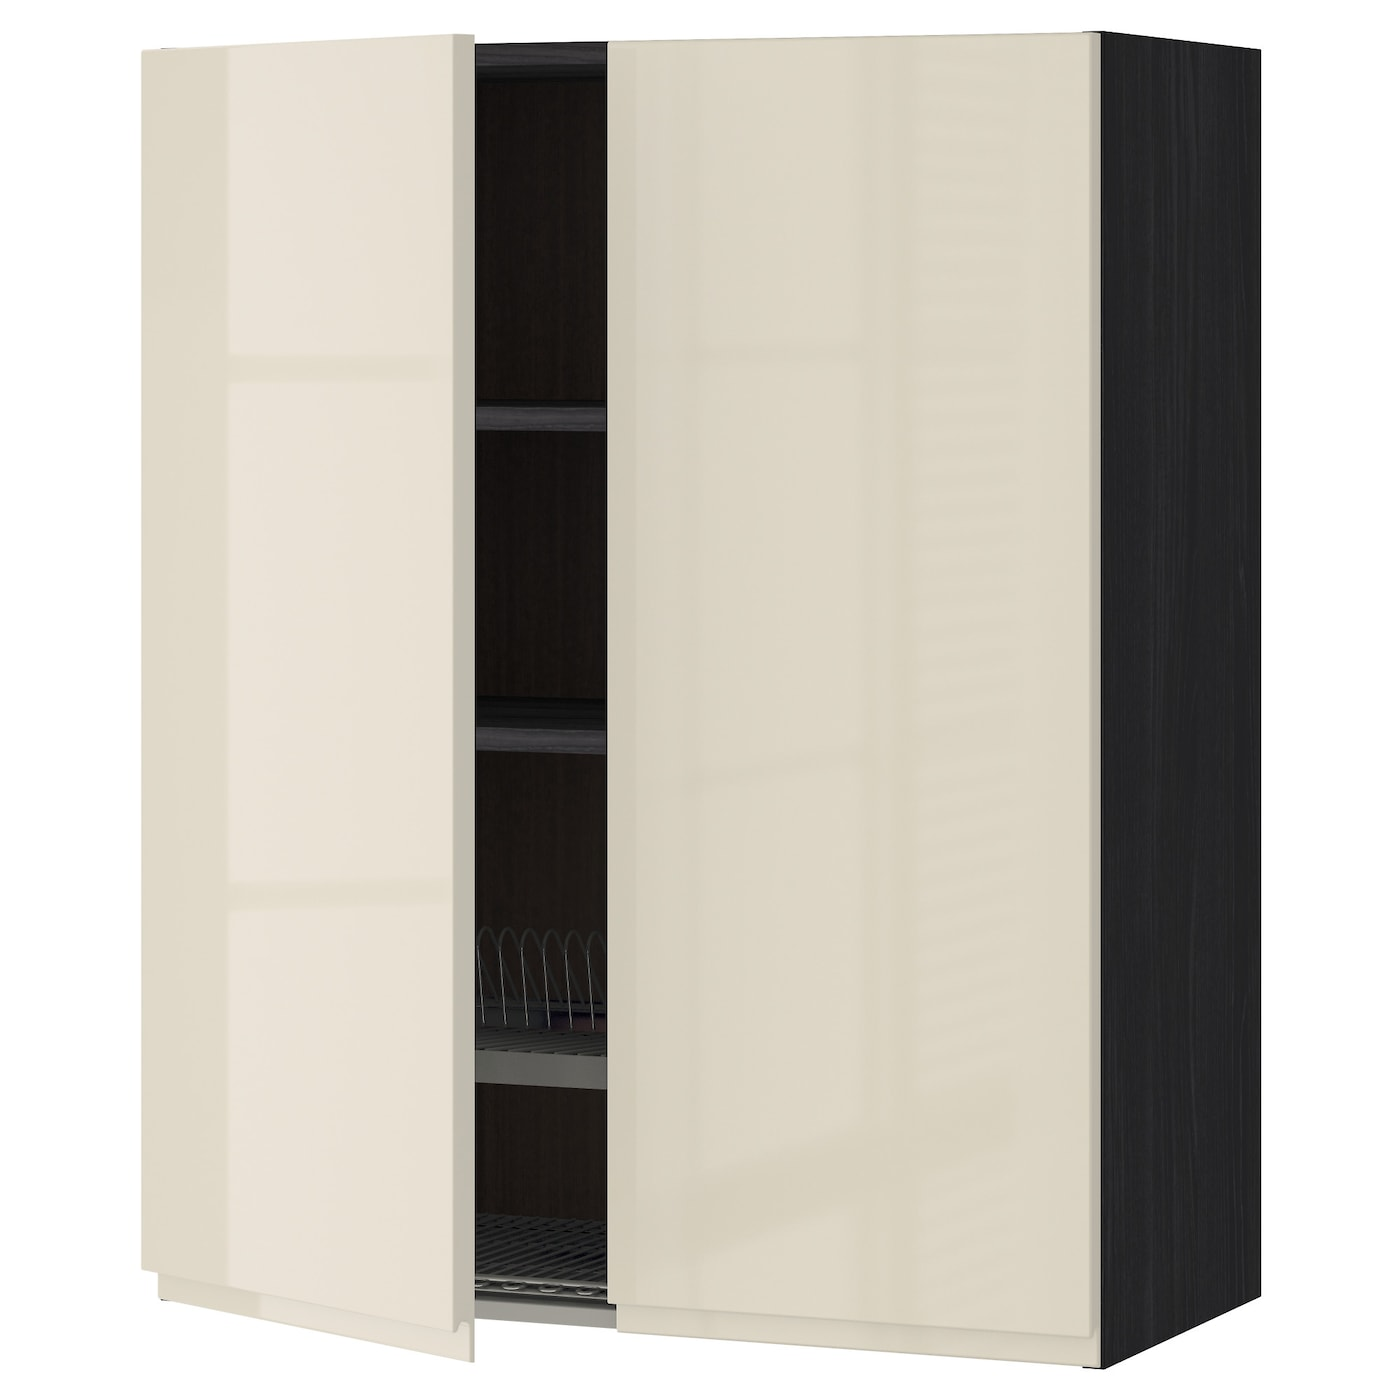 IKEA METOD wall cabinet w dish drainer/2 doors Sturdy frame construction, 18 mm thick.